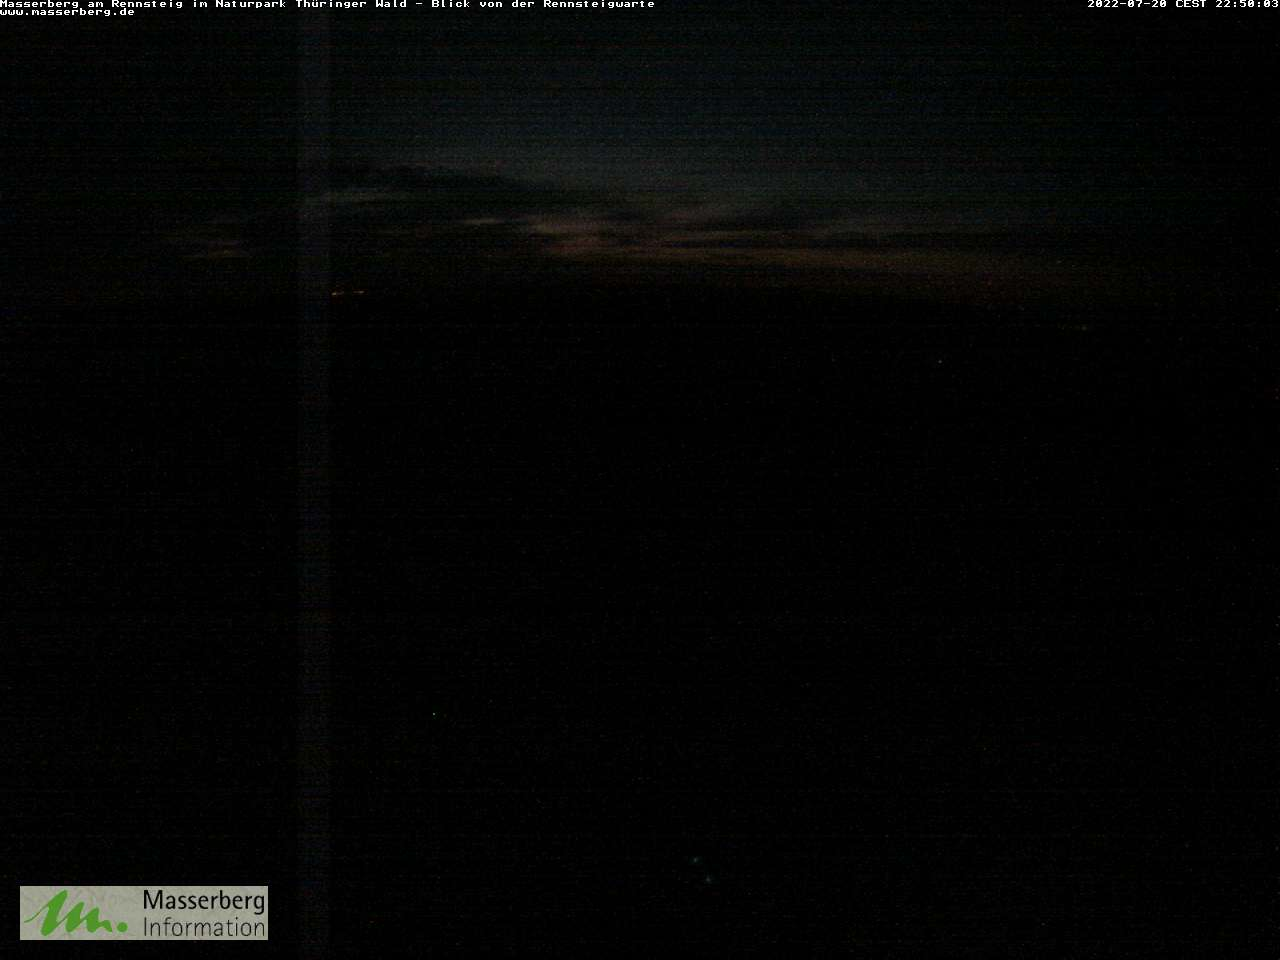 Webcam Masserberg